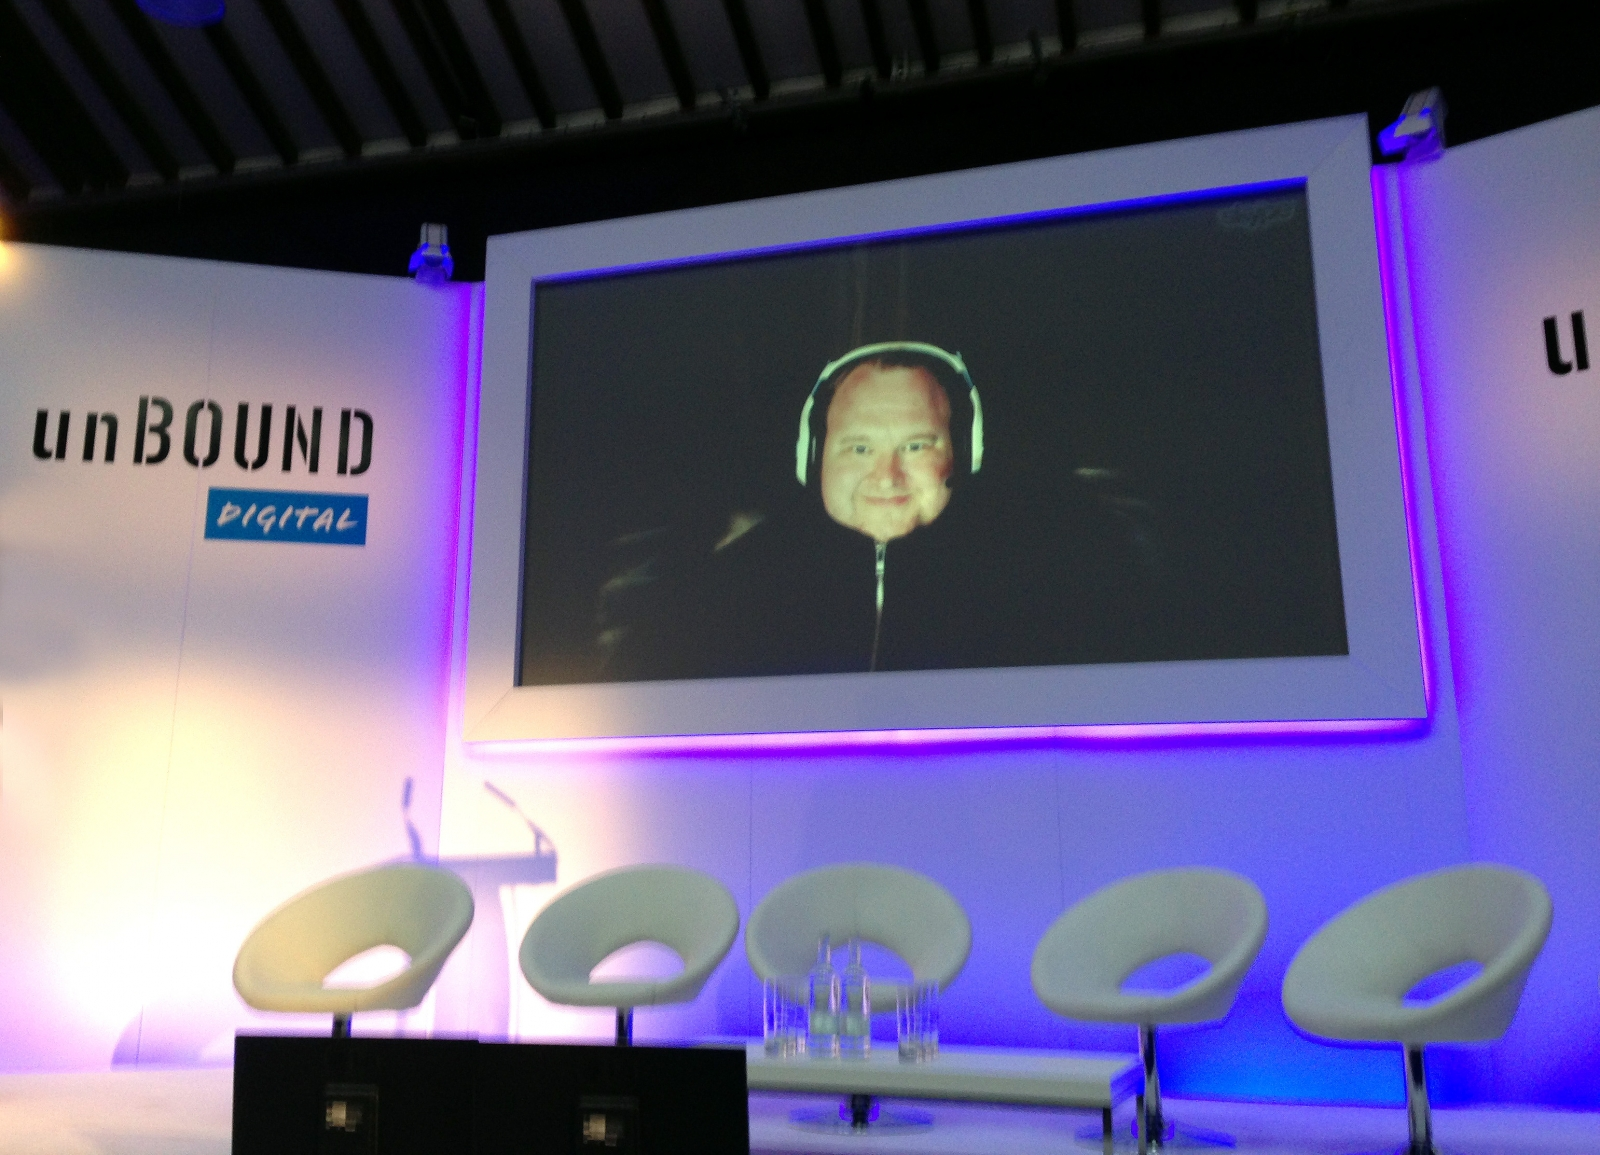 Kim Dotcom, speaking live via video link at the Unbound Digital conference in London today